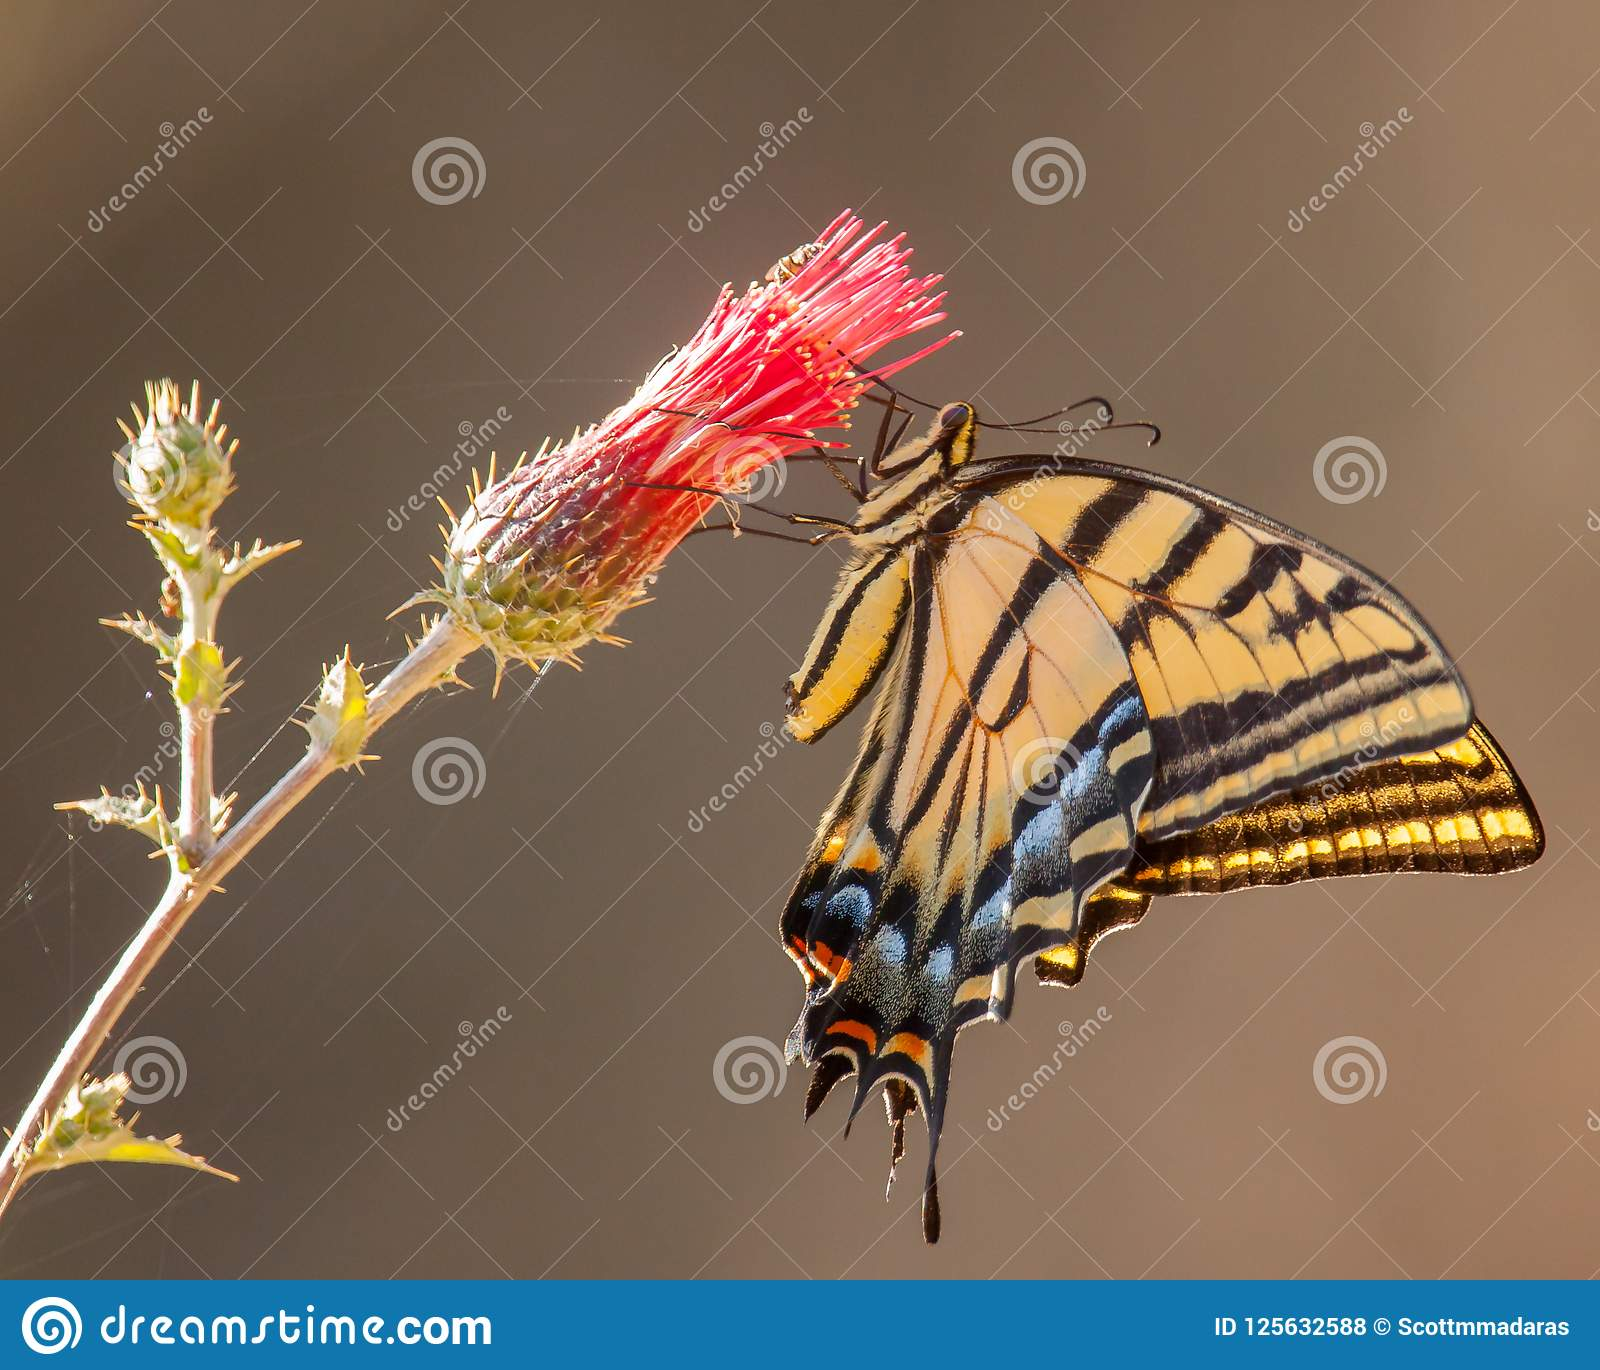 A very colorful 2-tailed swallowtail feeding on nectar from a flower